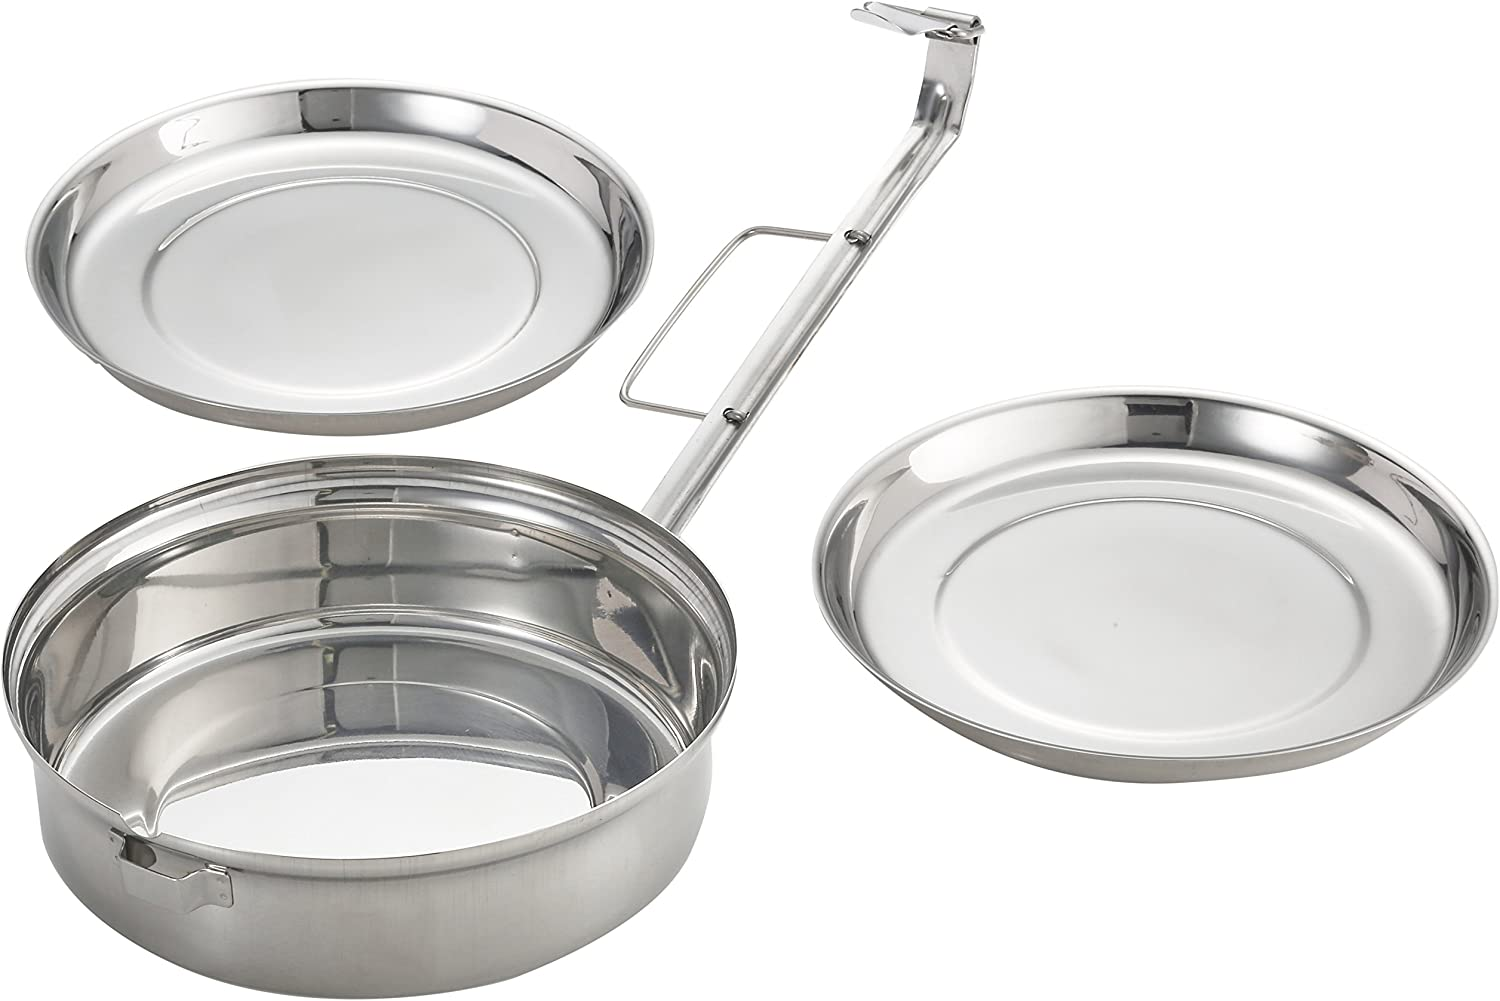 Silver IBILI Lunch Box with 2 Dishes 14 cm of Stainless Steel